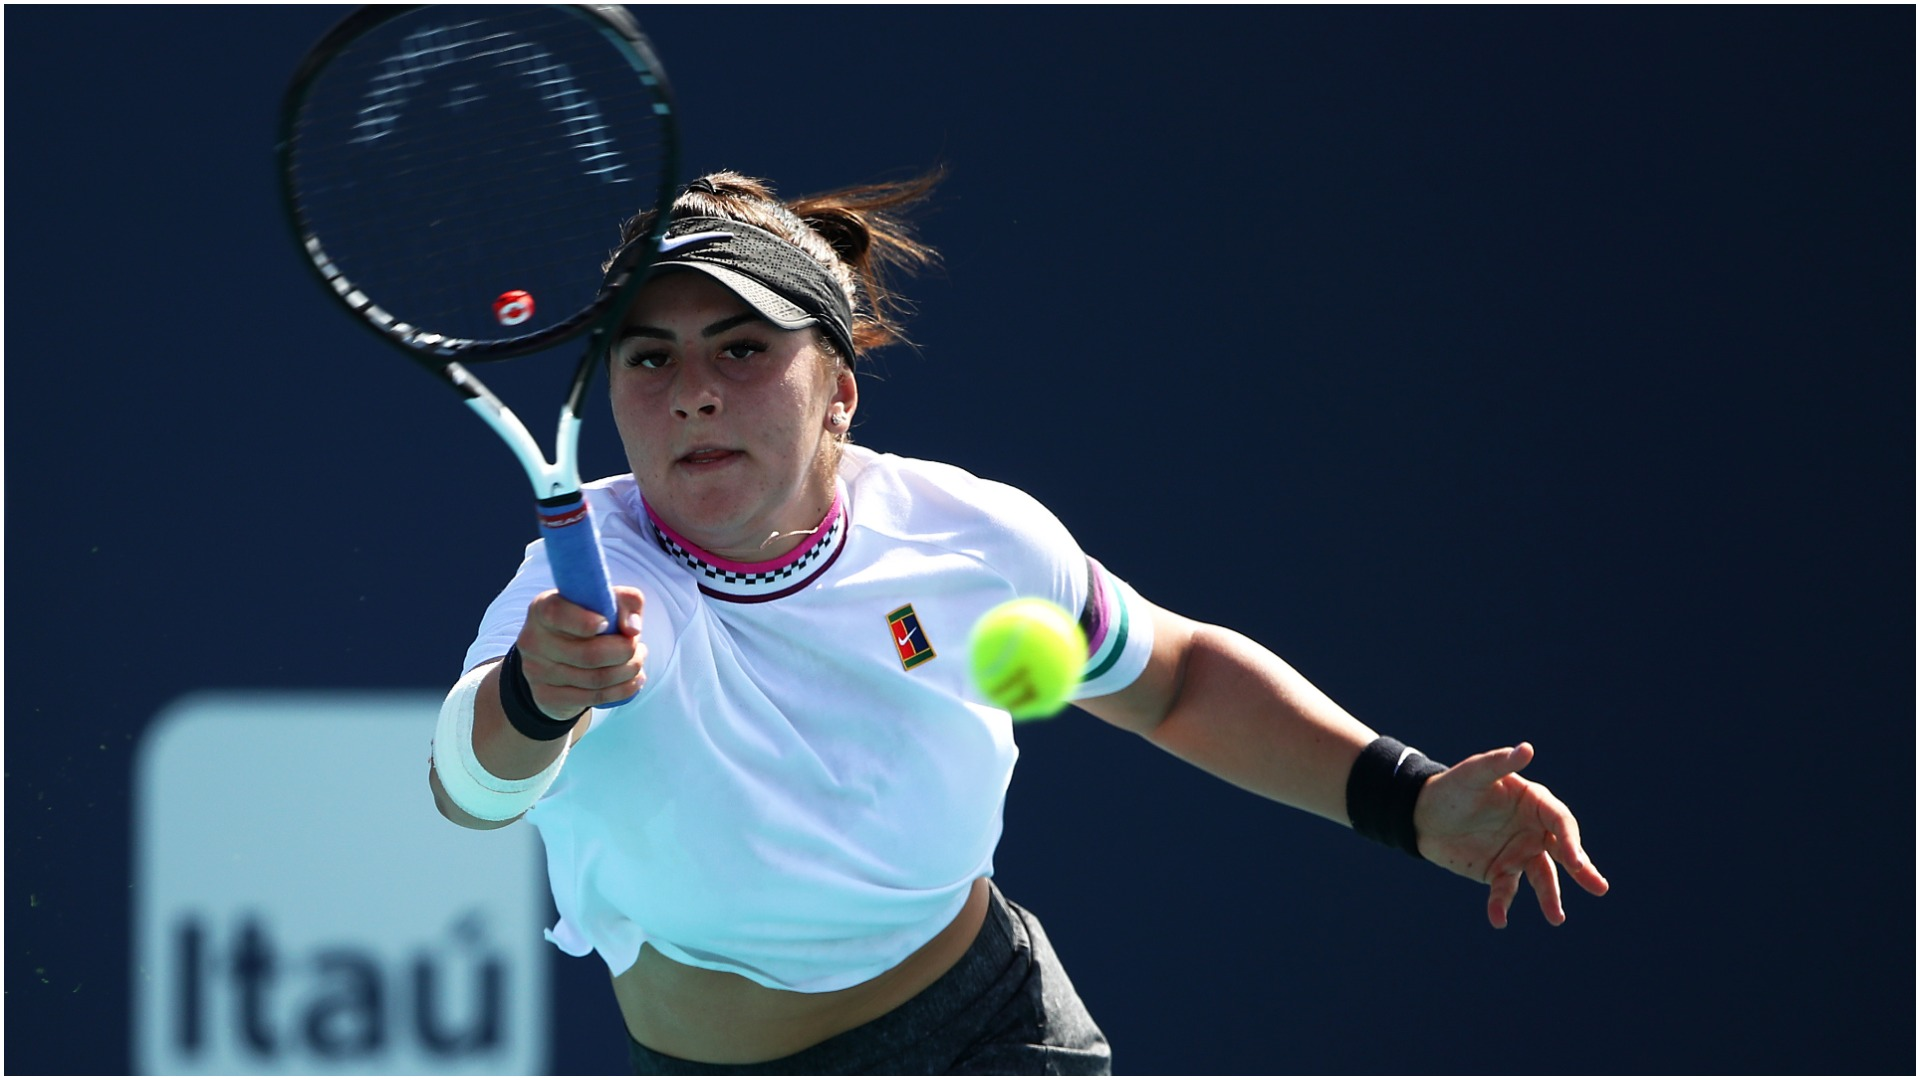 In-form Andreescu moves past Kenin in Miami